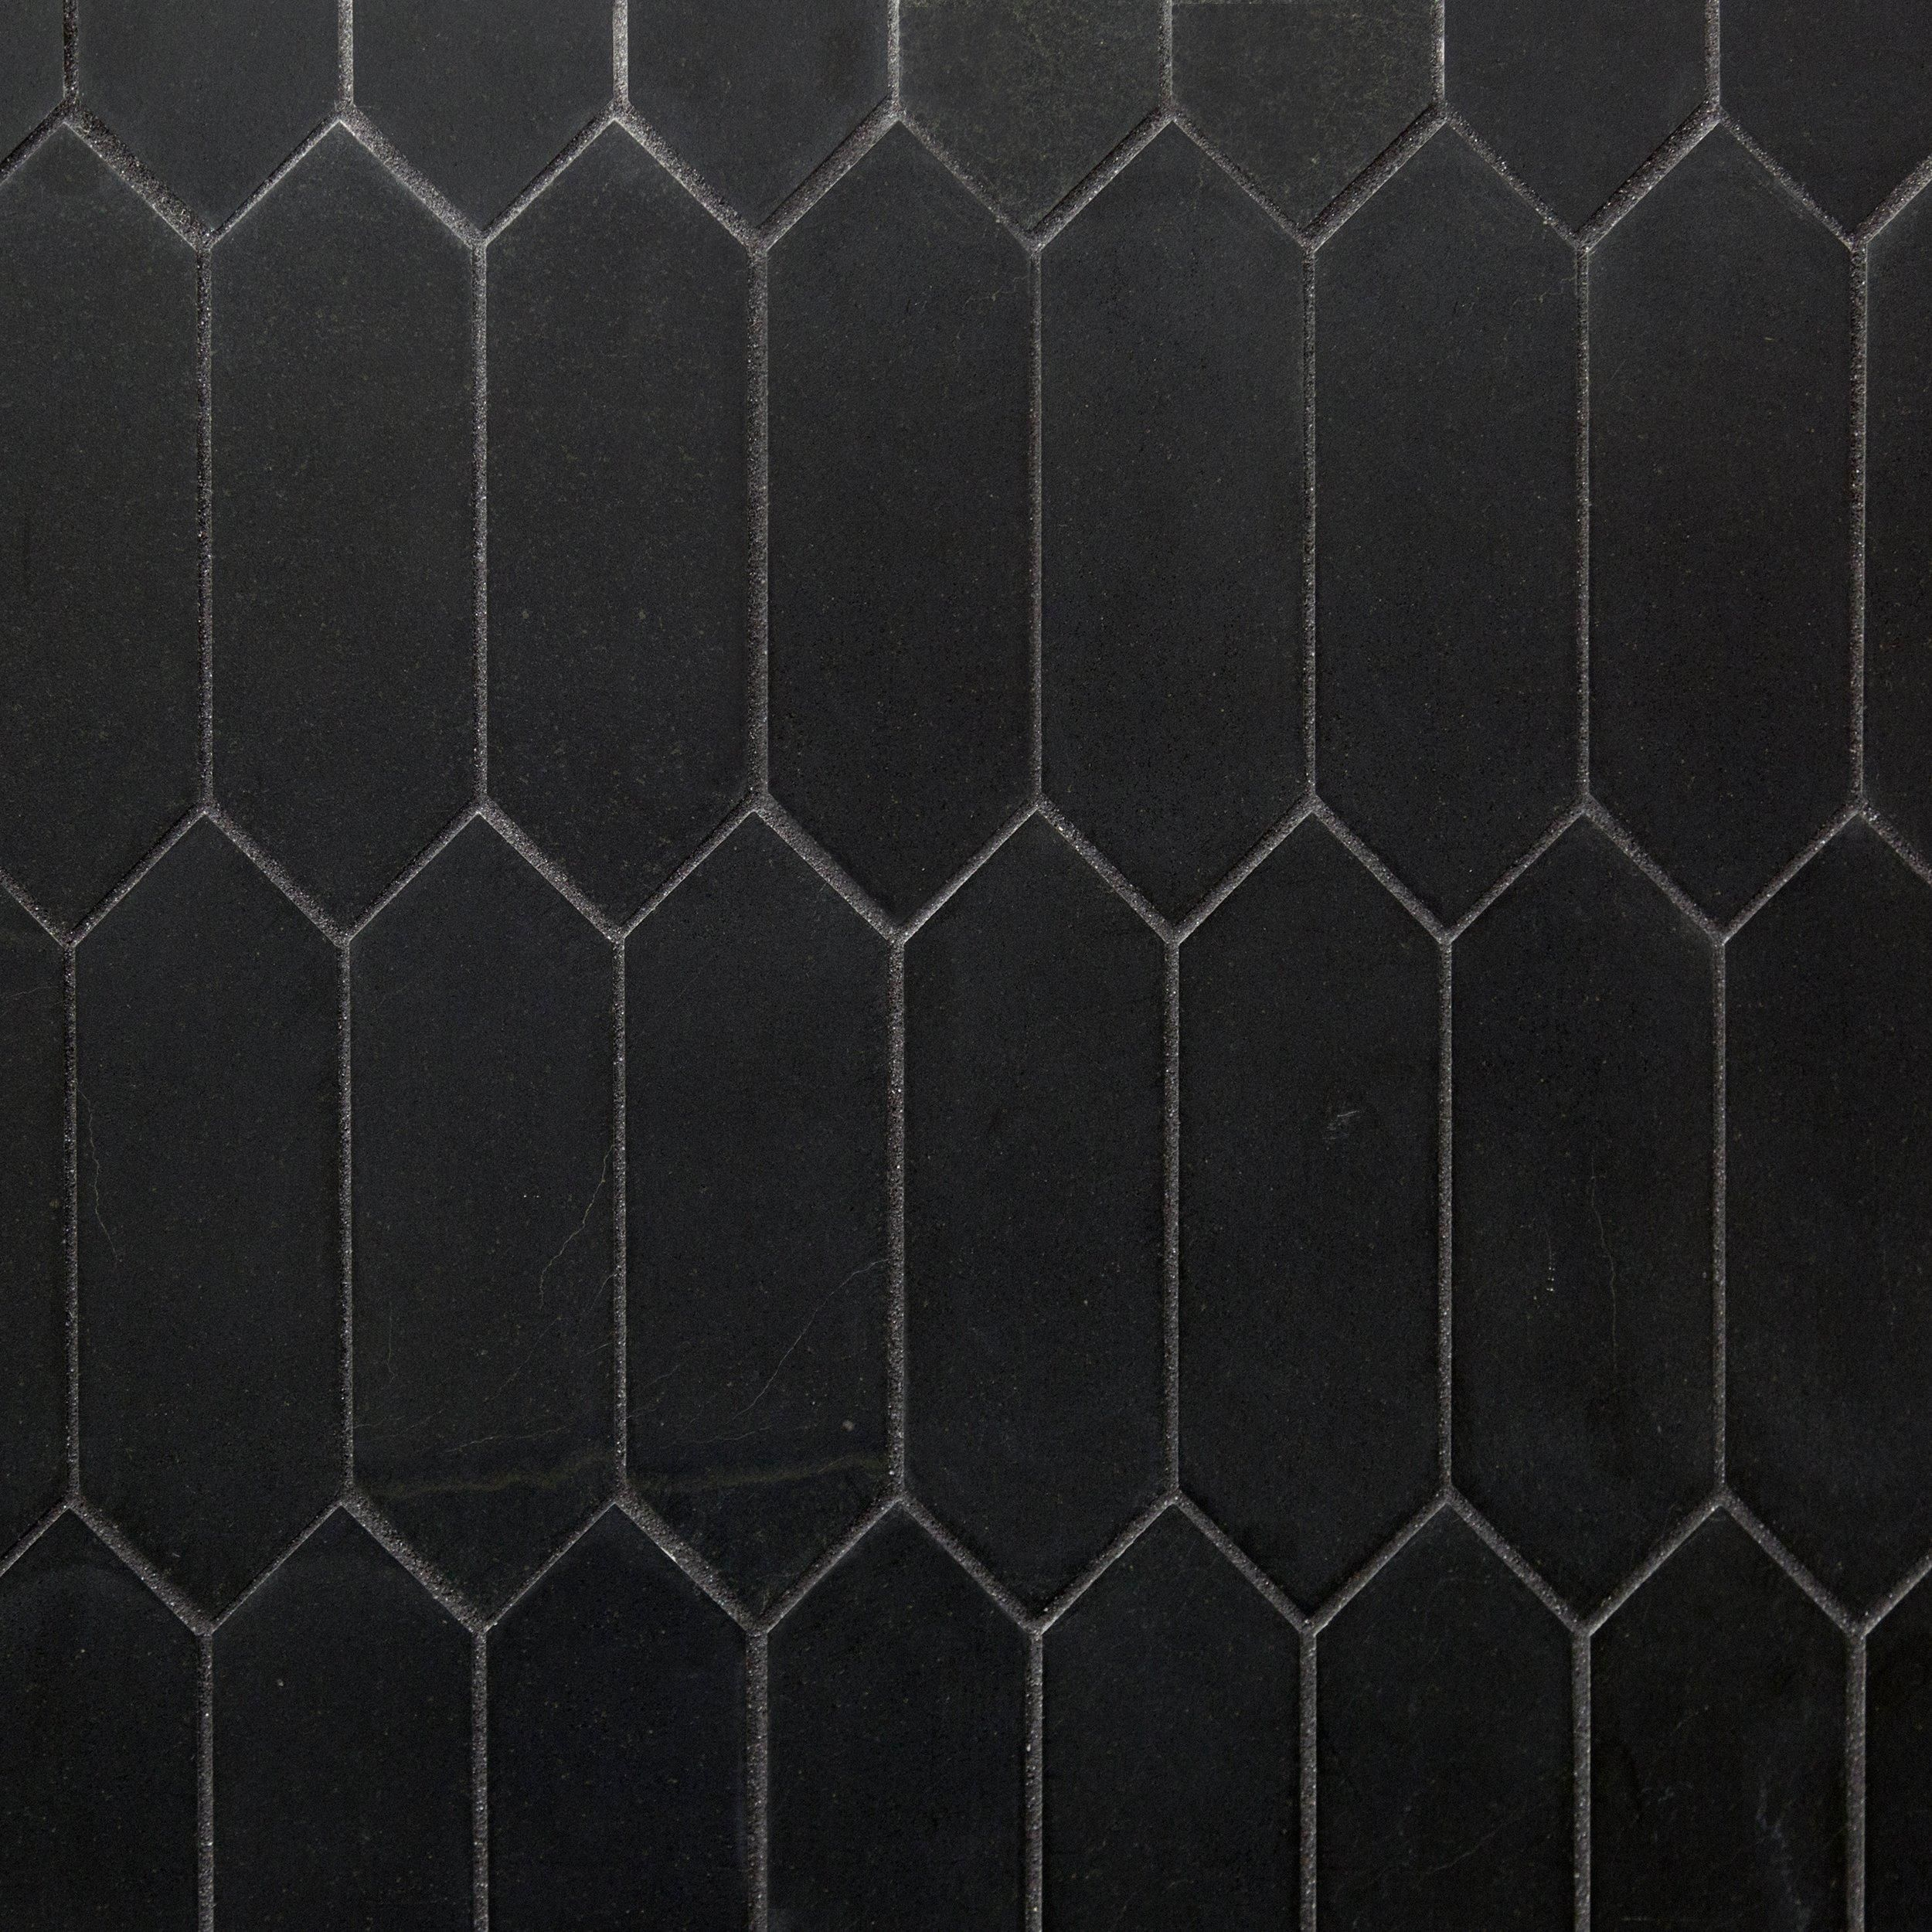 Jet Black Basalt Picket Limestone Mosaic In 2020 Black Basalt Black Mosaic Bathroom Black Wall Tiles